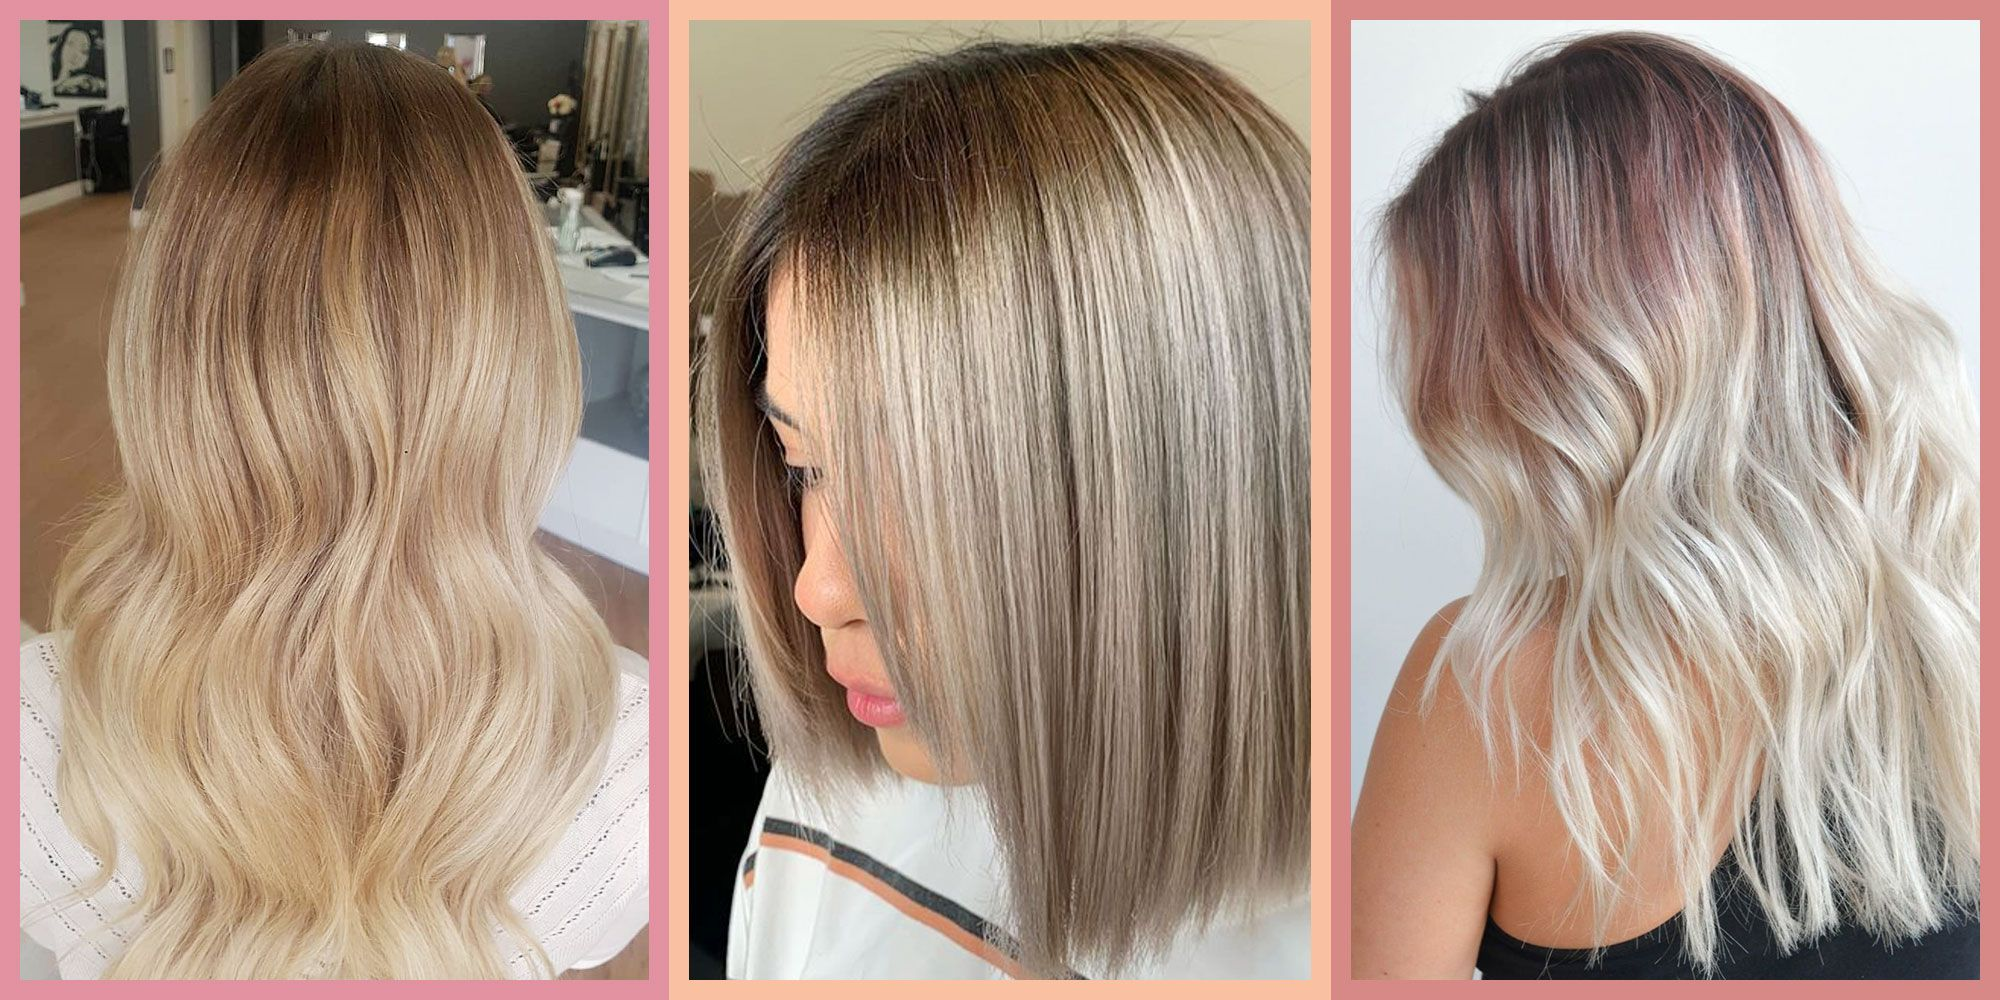 20 Shadow Root Hair Color Ideas That You'll Be Obsessed With